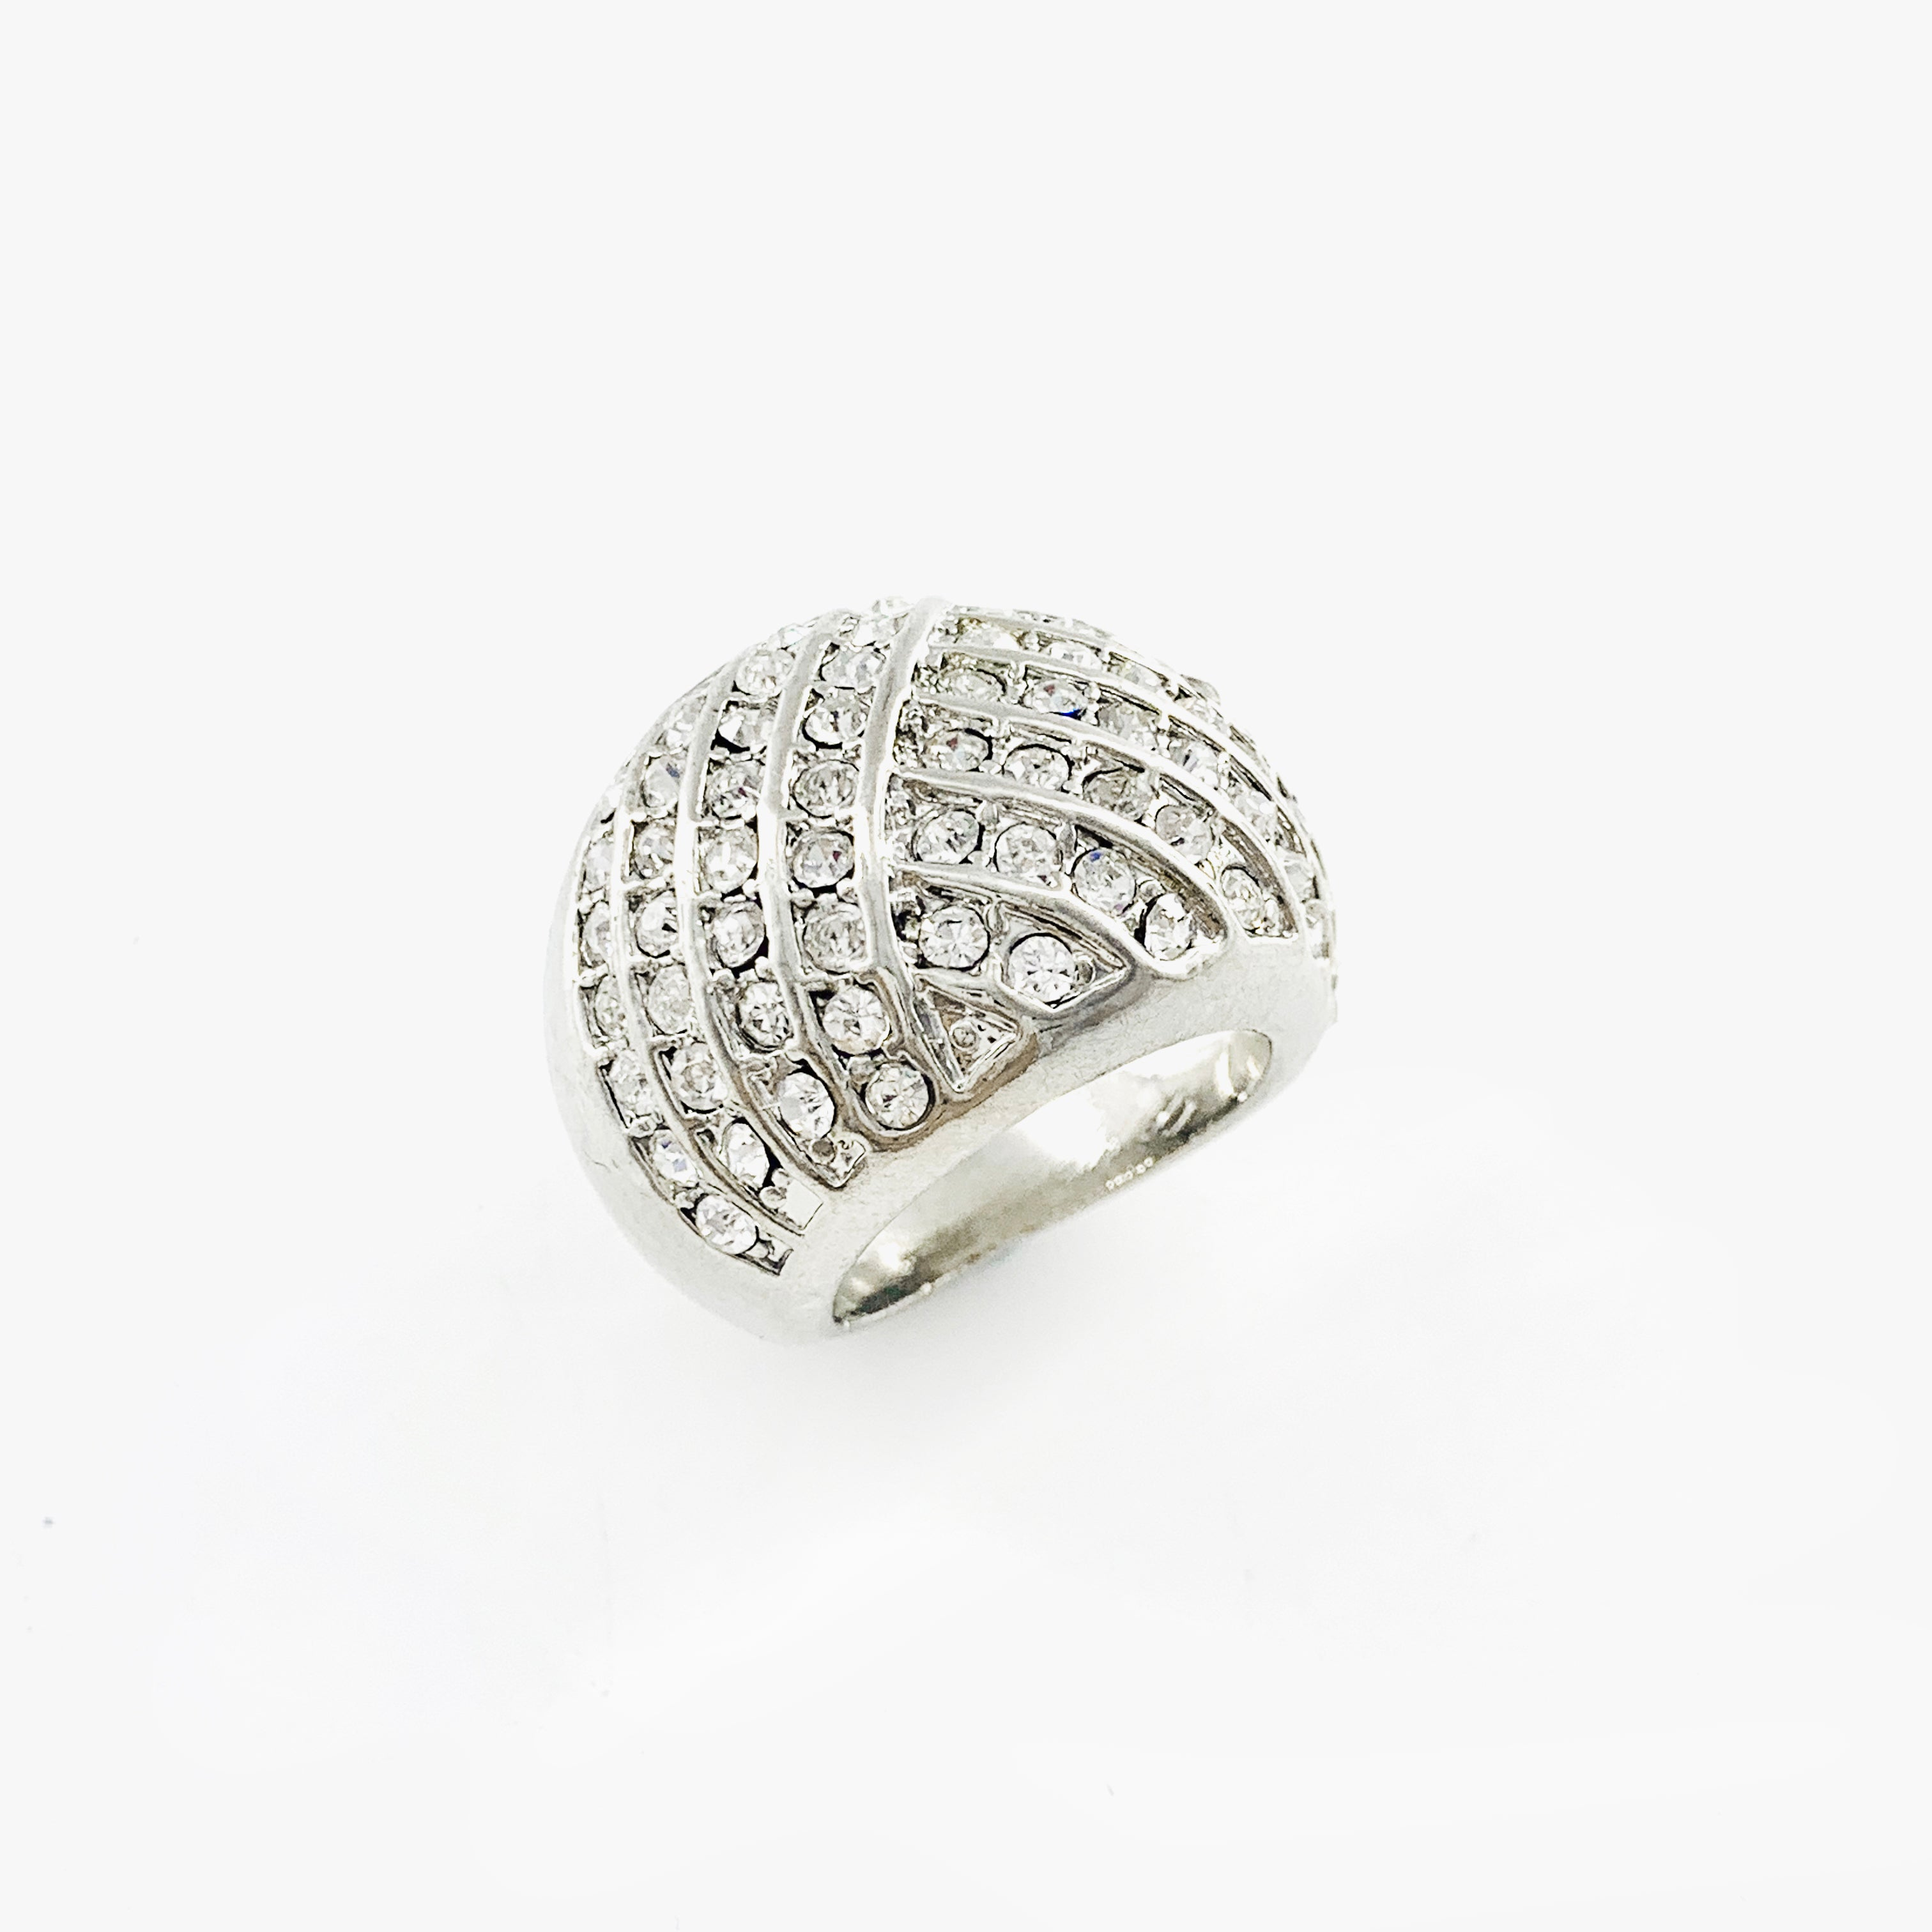 Chunky silver ring with diamante stones